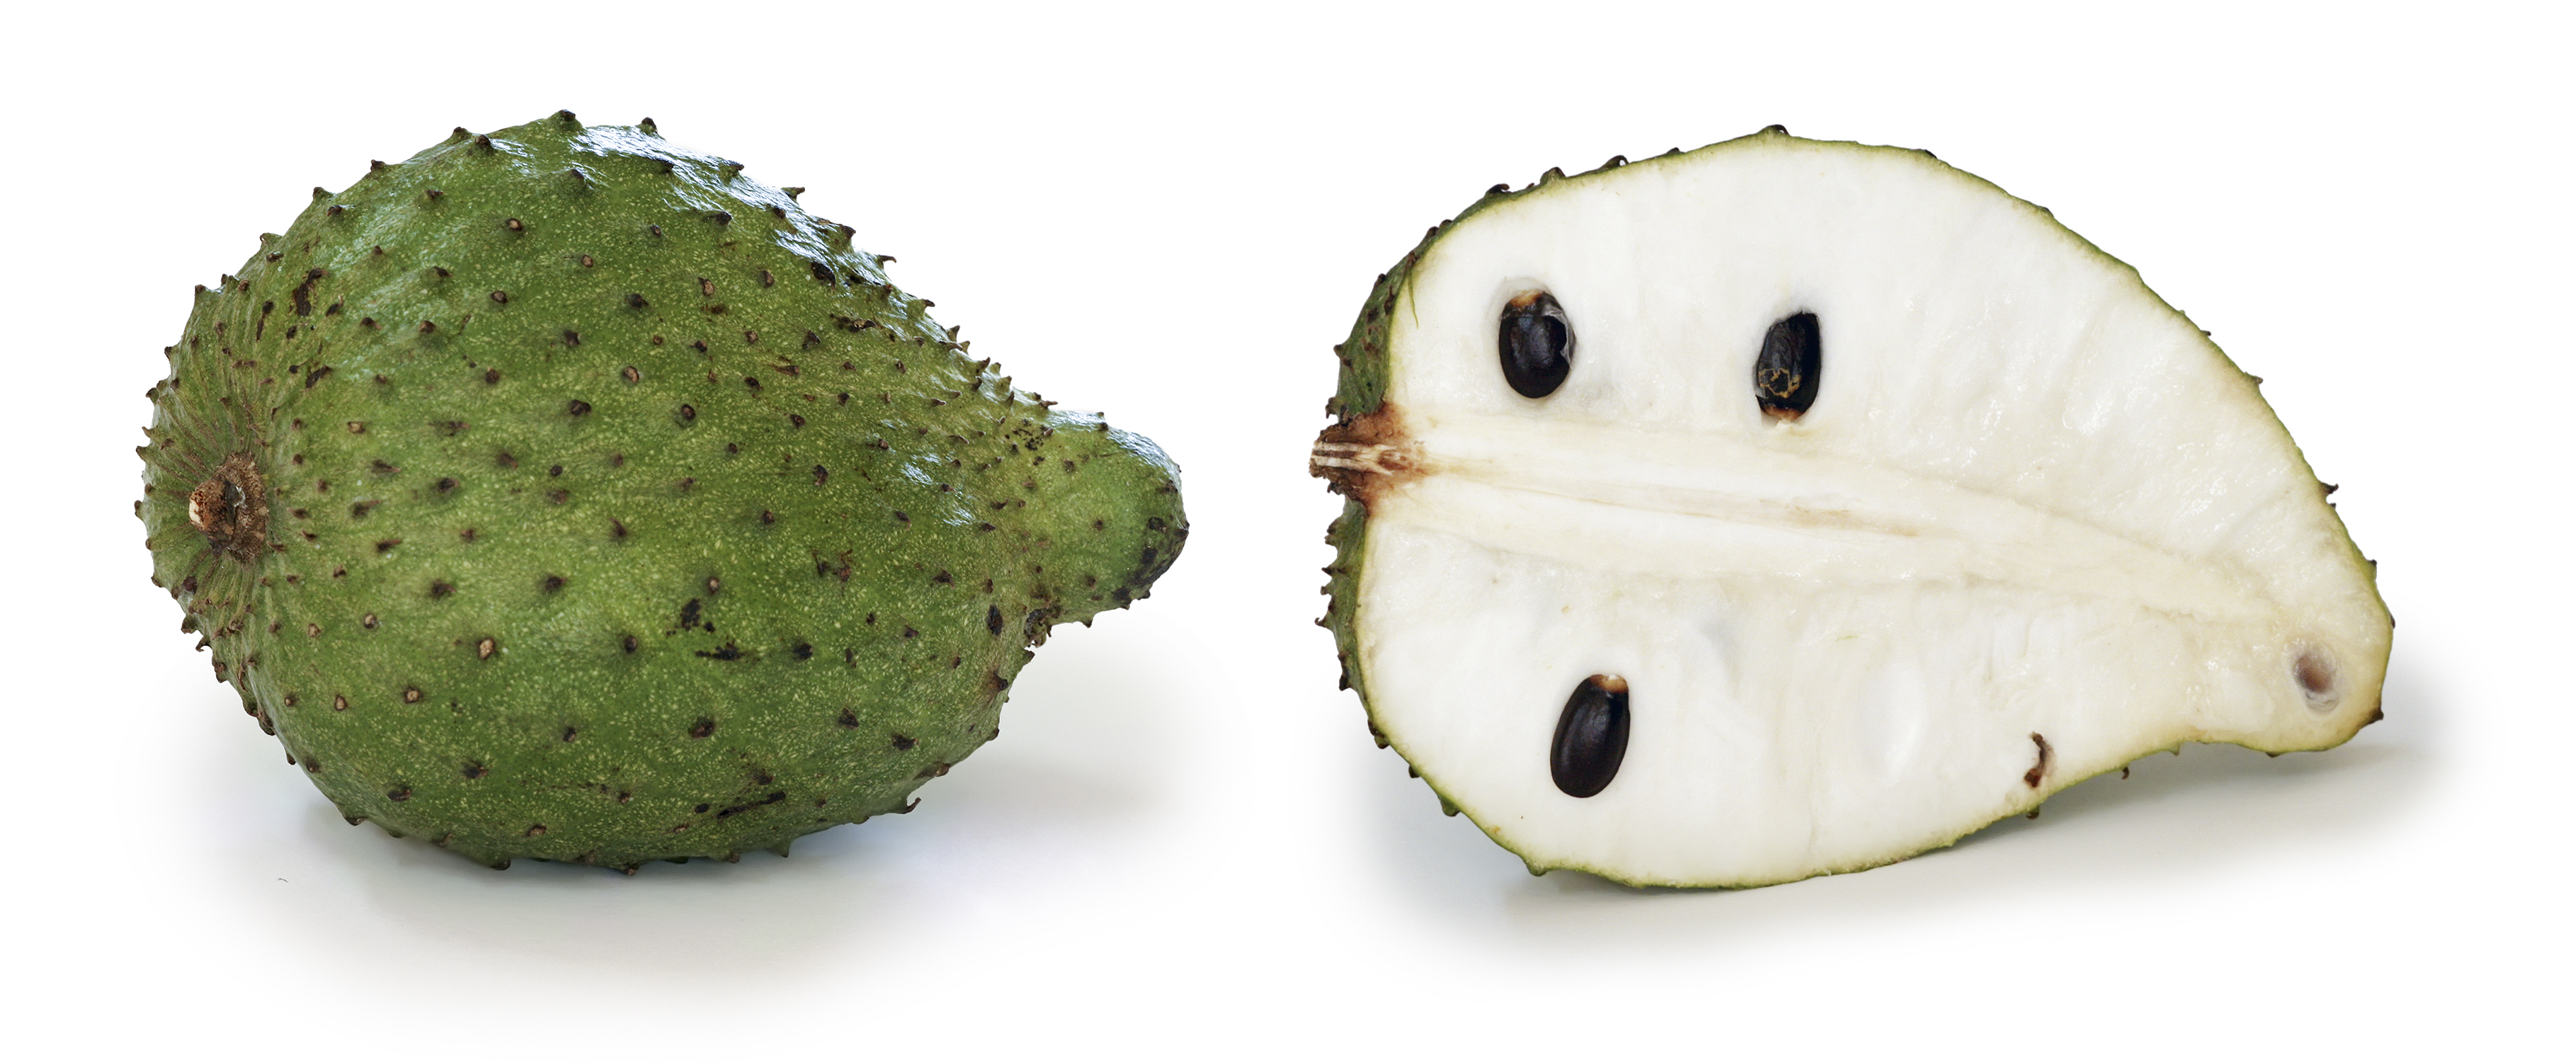 16 Amazing Benefits Of Soursop Juice For Skin, Hair And Health